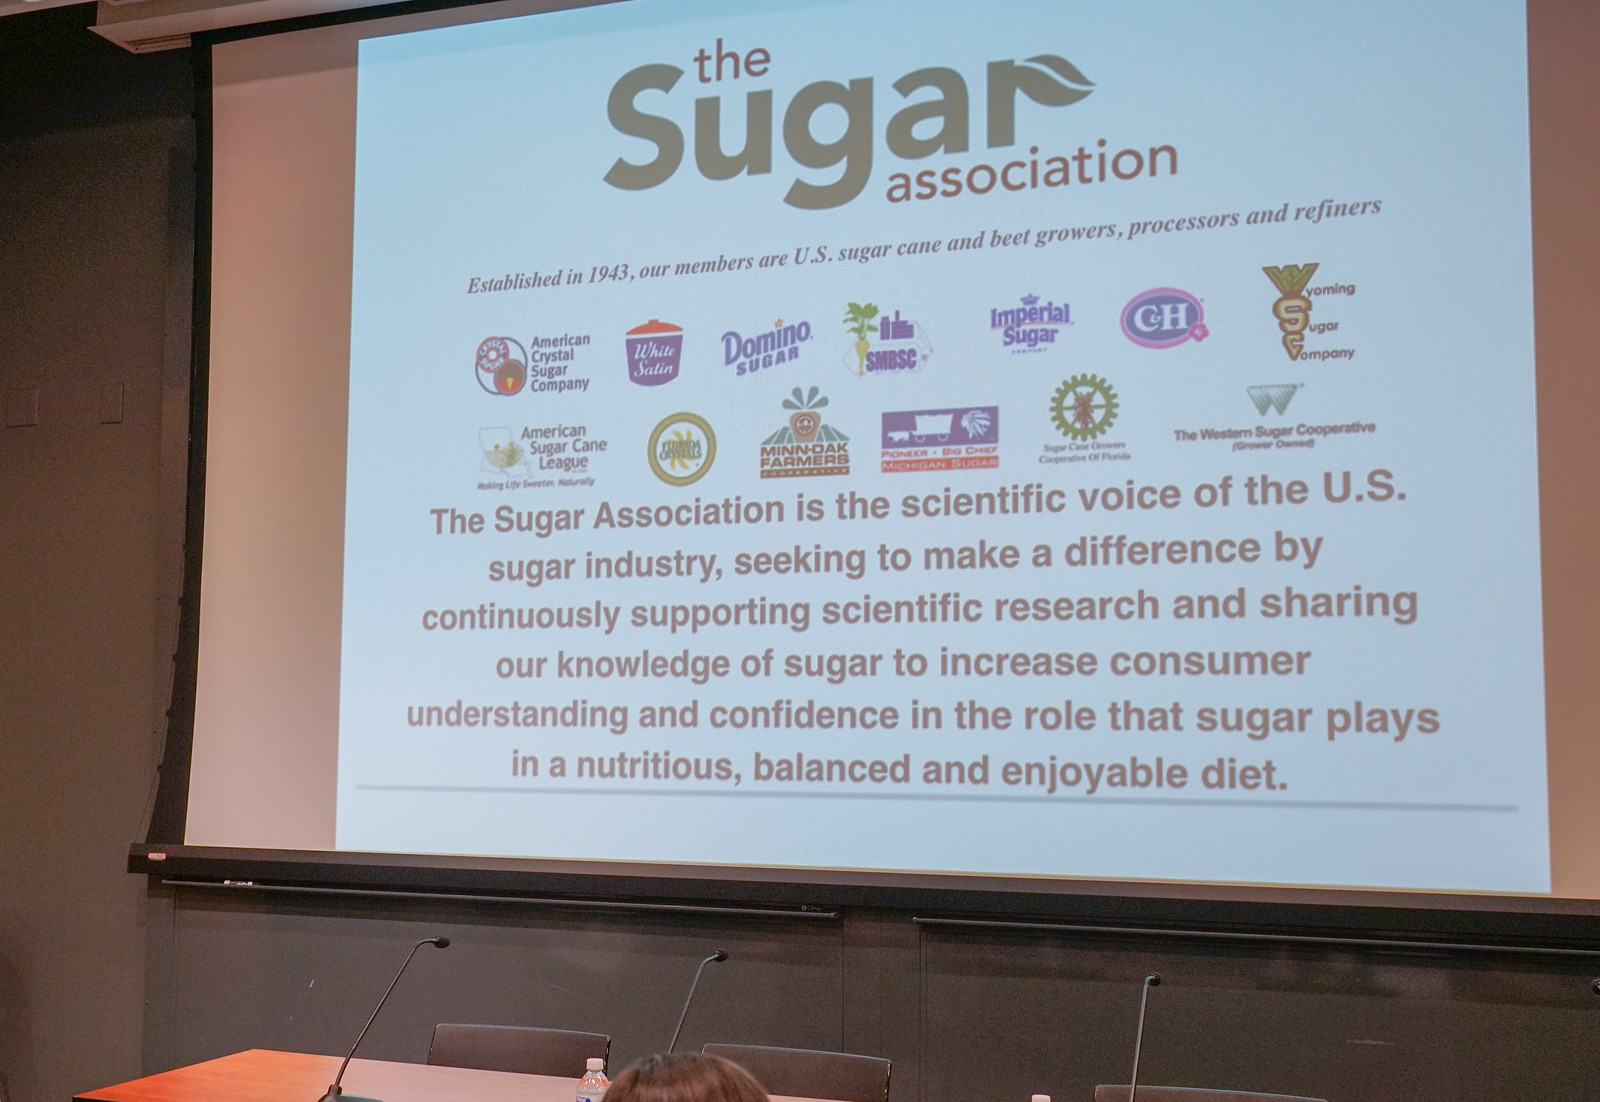 2018.03.21 Cross-Disciplinary Discussion Surrounding Sugar and Sweetener Consumption, Washington, DC USA 4165